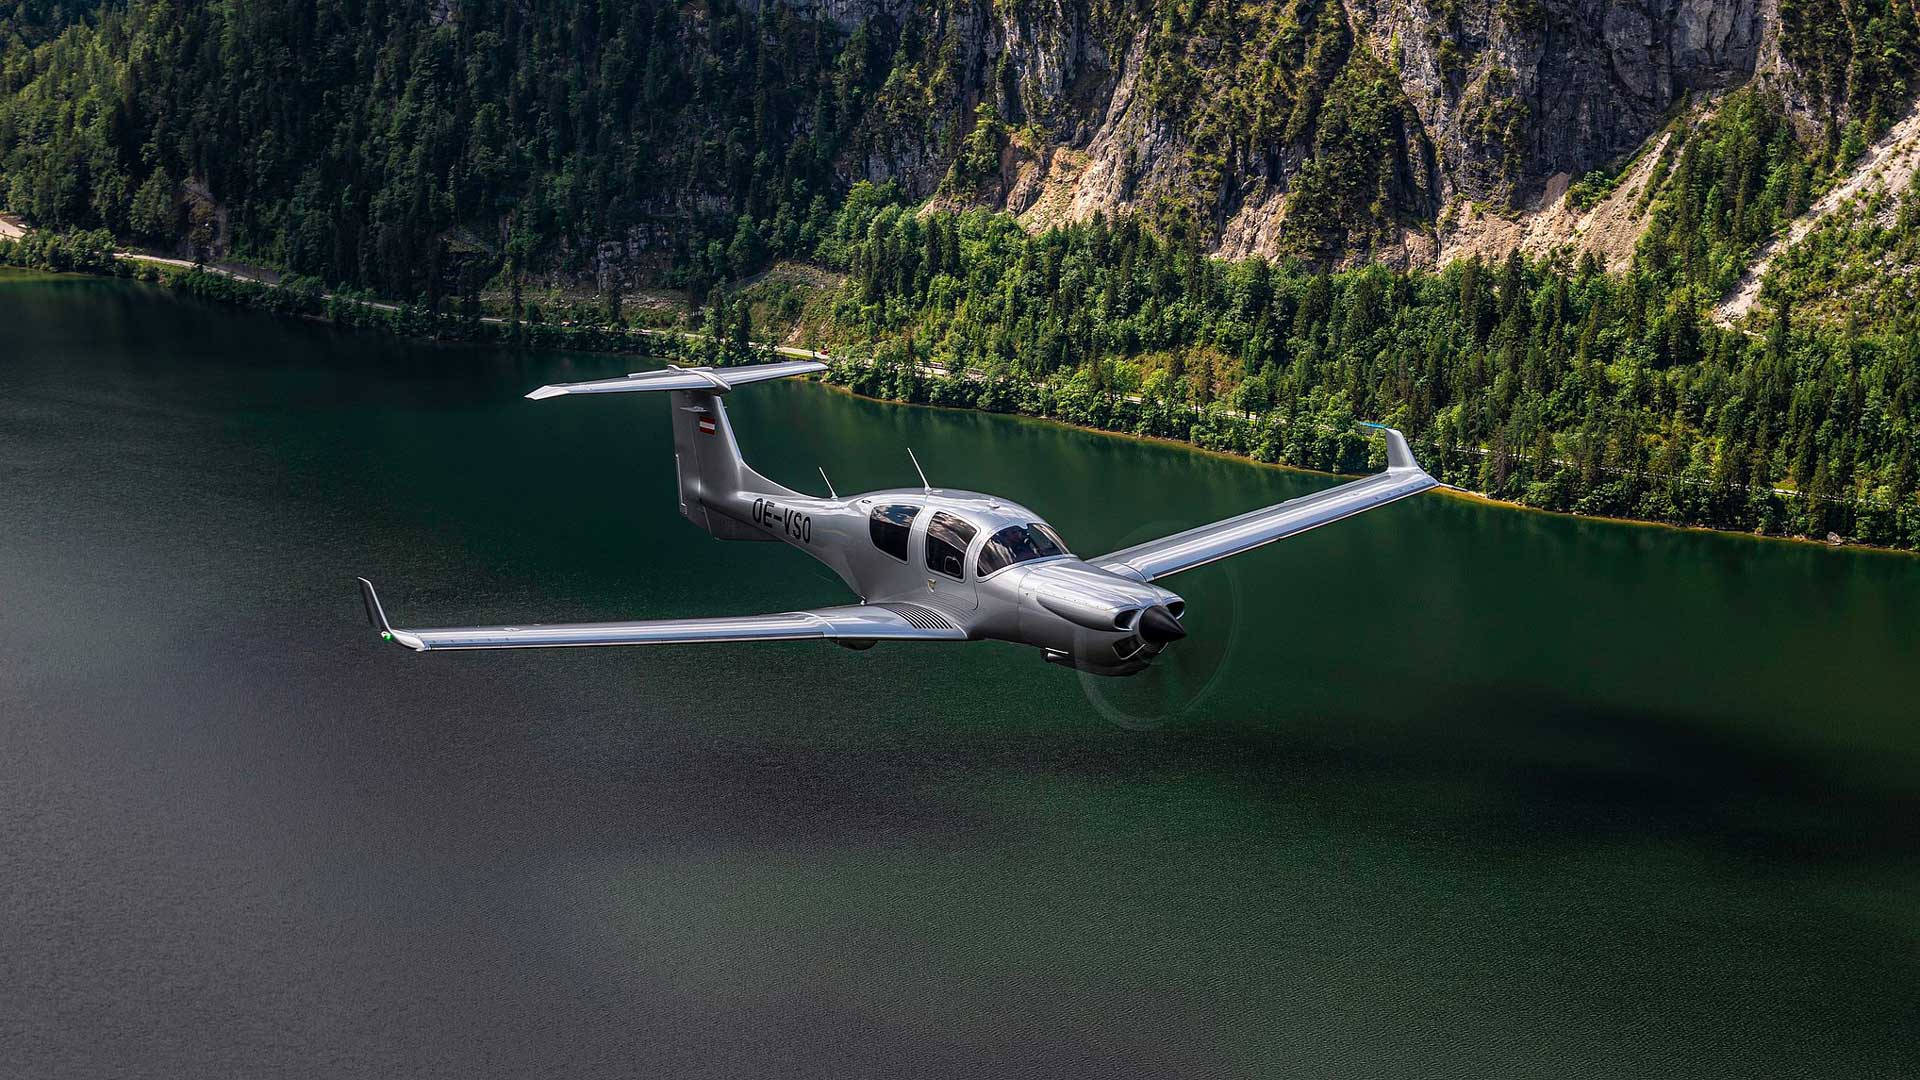 Le Diamond Aircraft DA50 RG maintenant certifié EASA - ATA by Pelletier